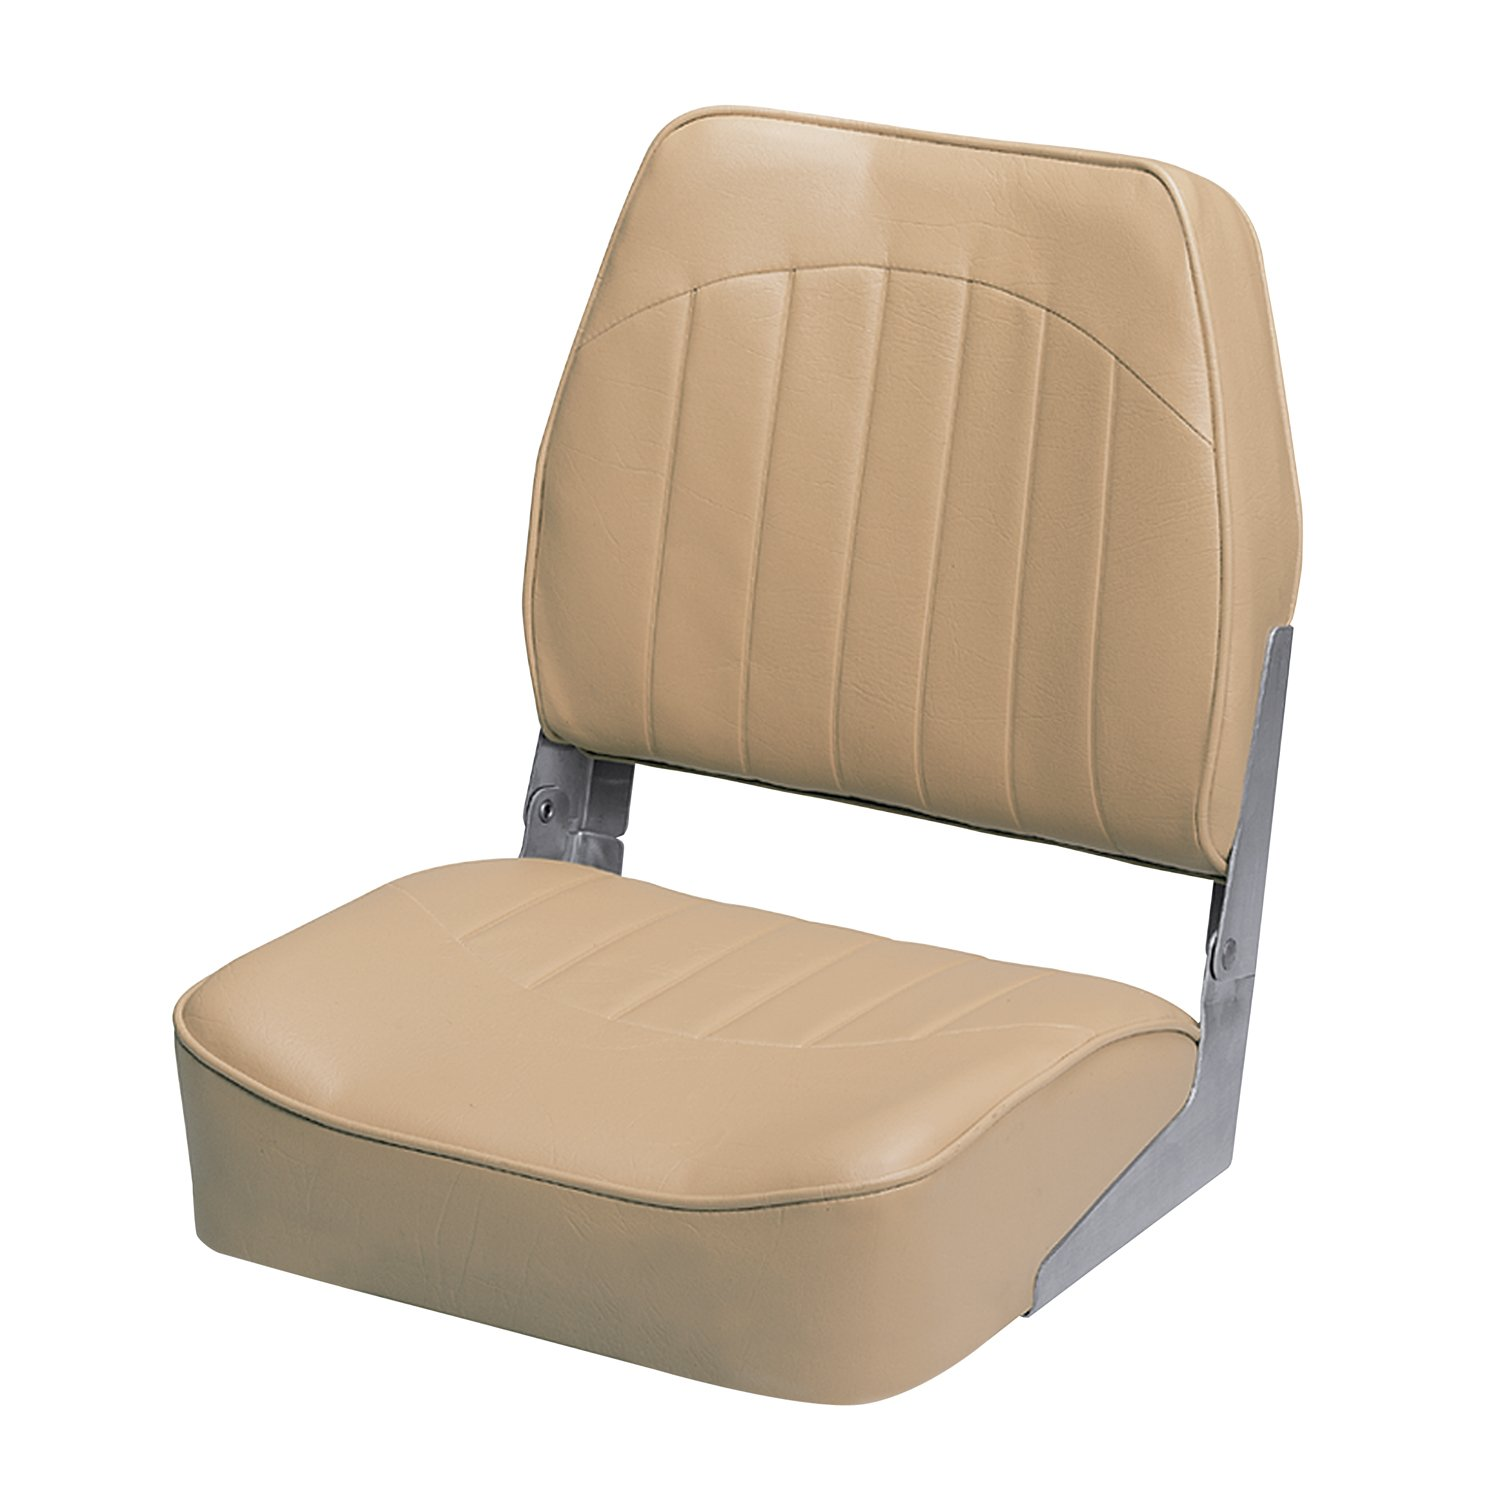 Wise 8WD734PLS-715 Low Back Boat Seat, Sand by Wise